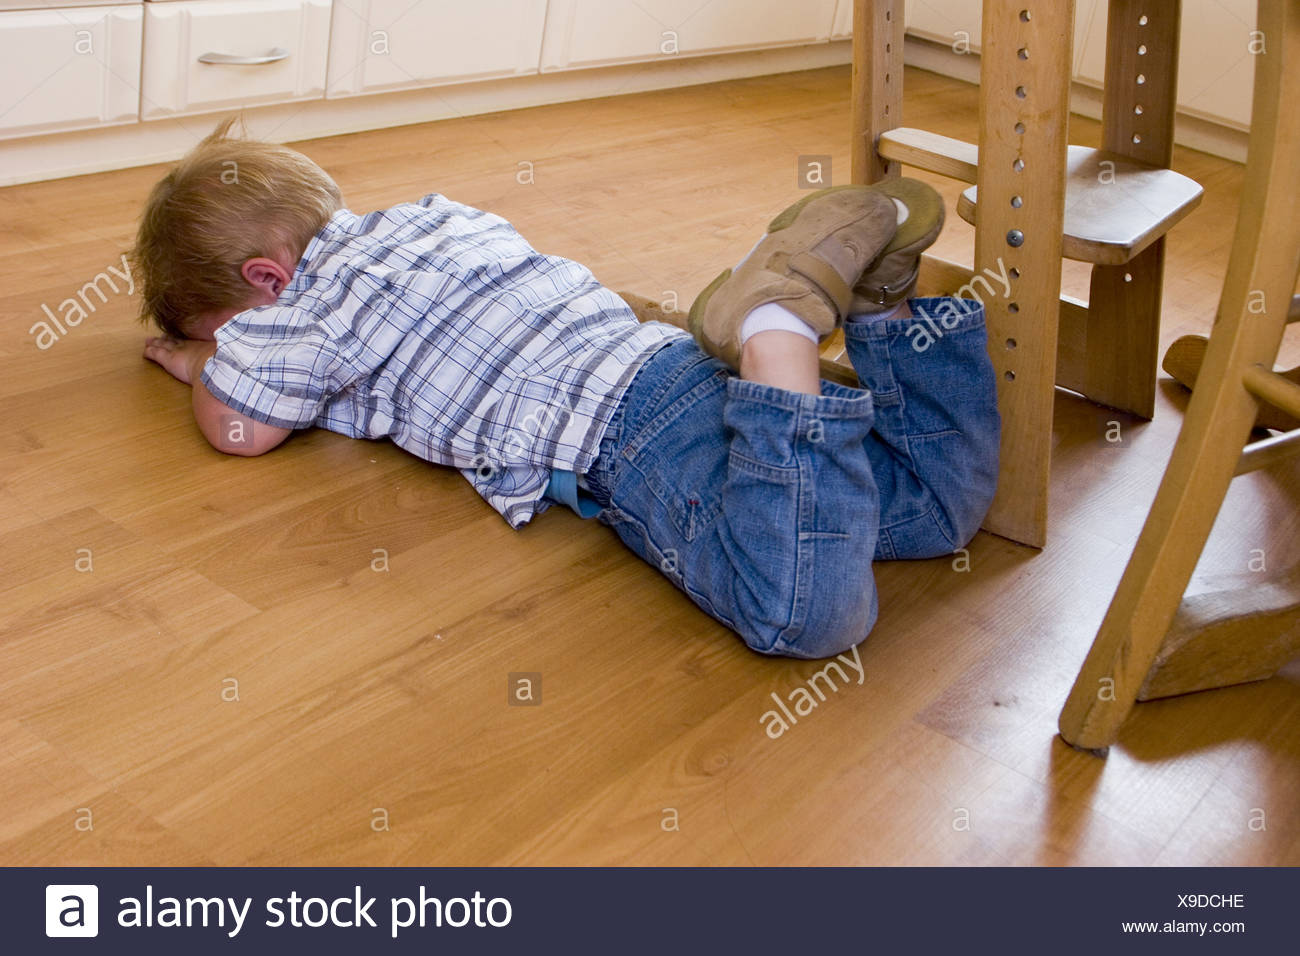 Little child throwing a temper tantrum at home. The toddler is down on the floor, hiding his face, out of control and misbehaving. Stock Photo